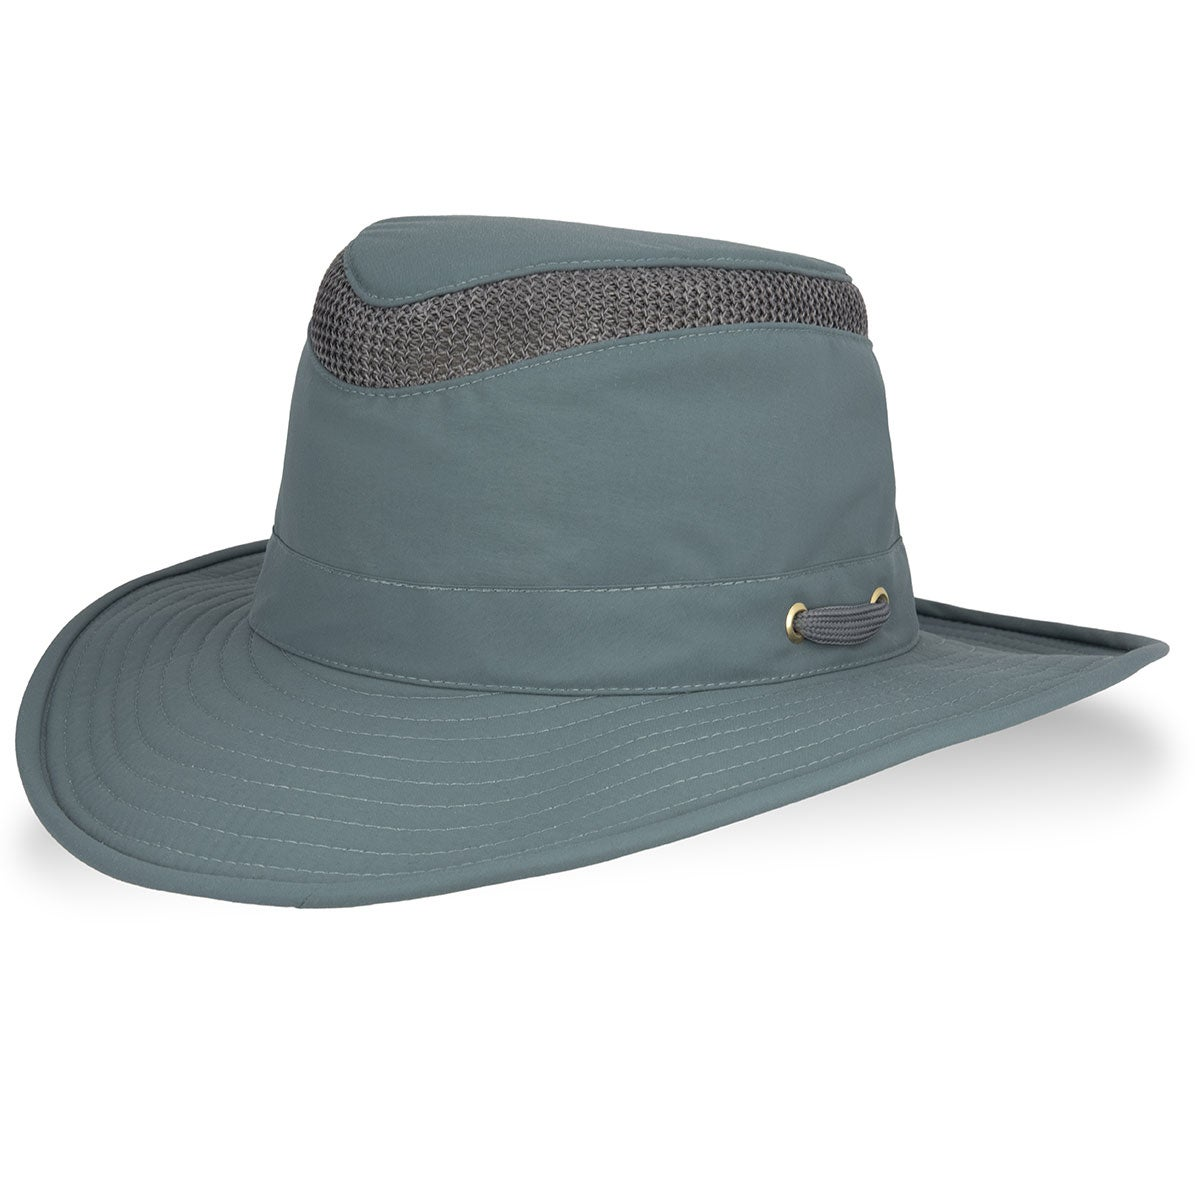 Tilley Airflo Lightweight Broad Brim Outback in Silver Pine